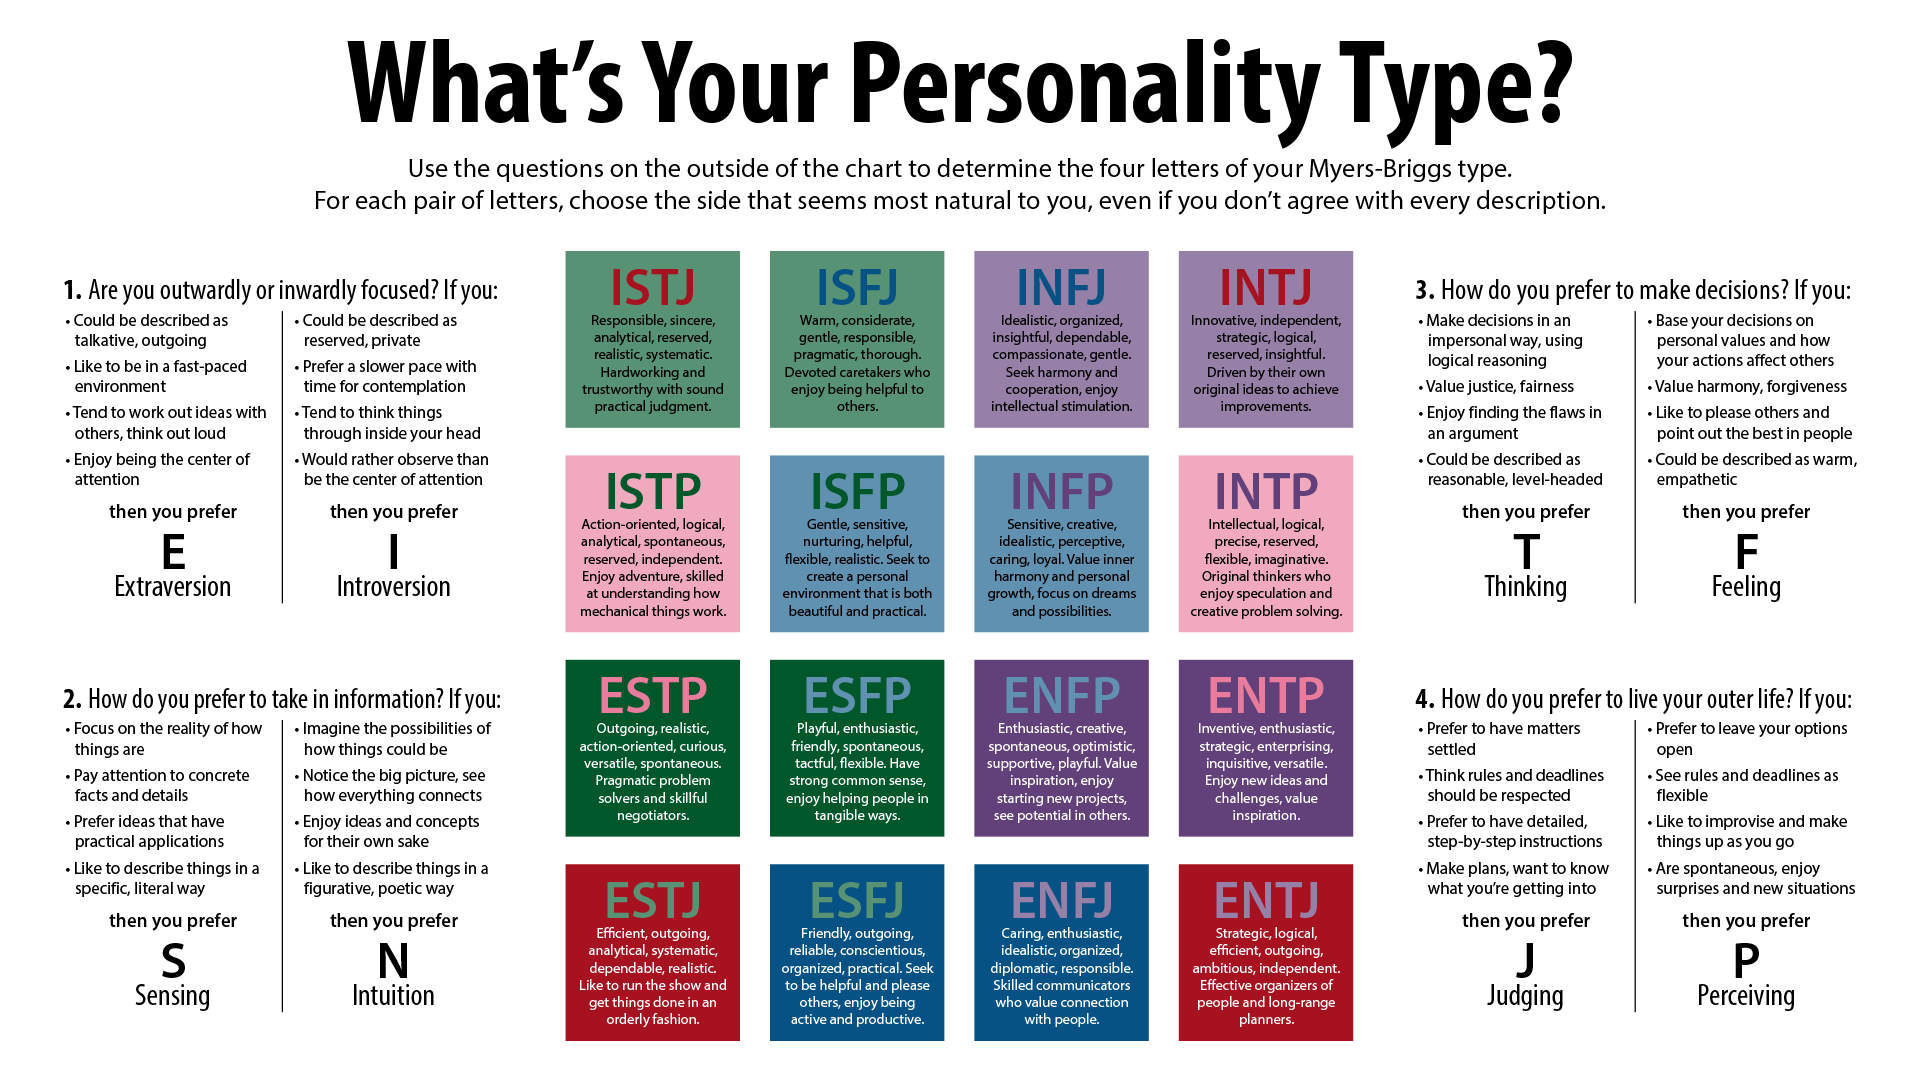 case 3.1 personality testing yes or no